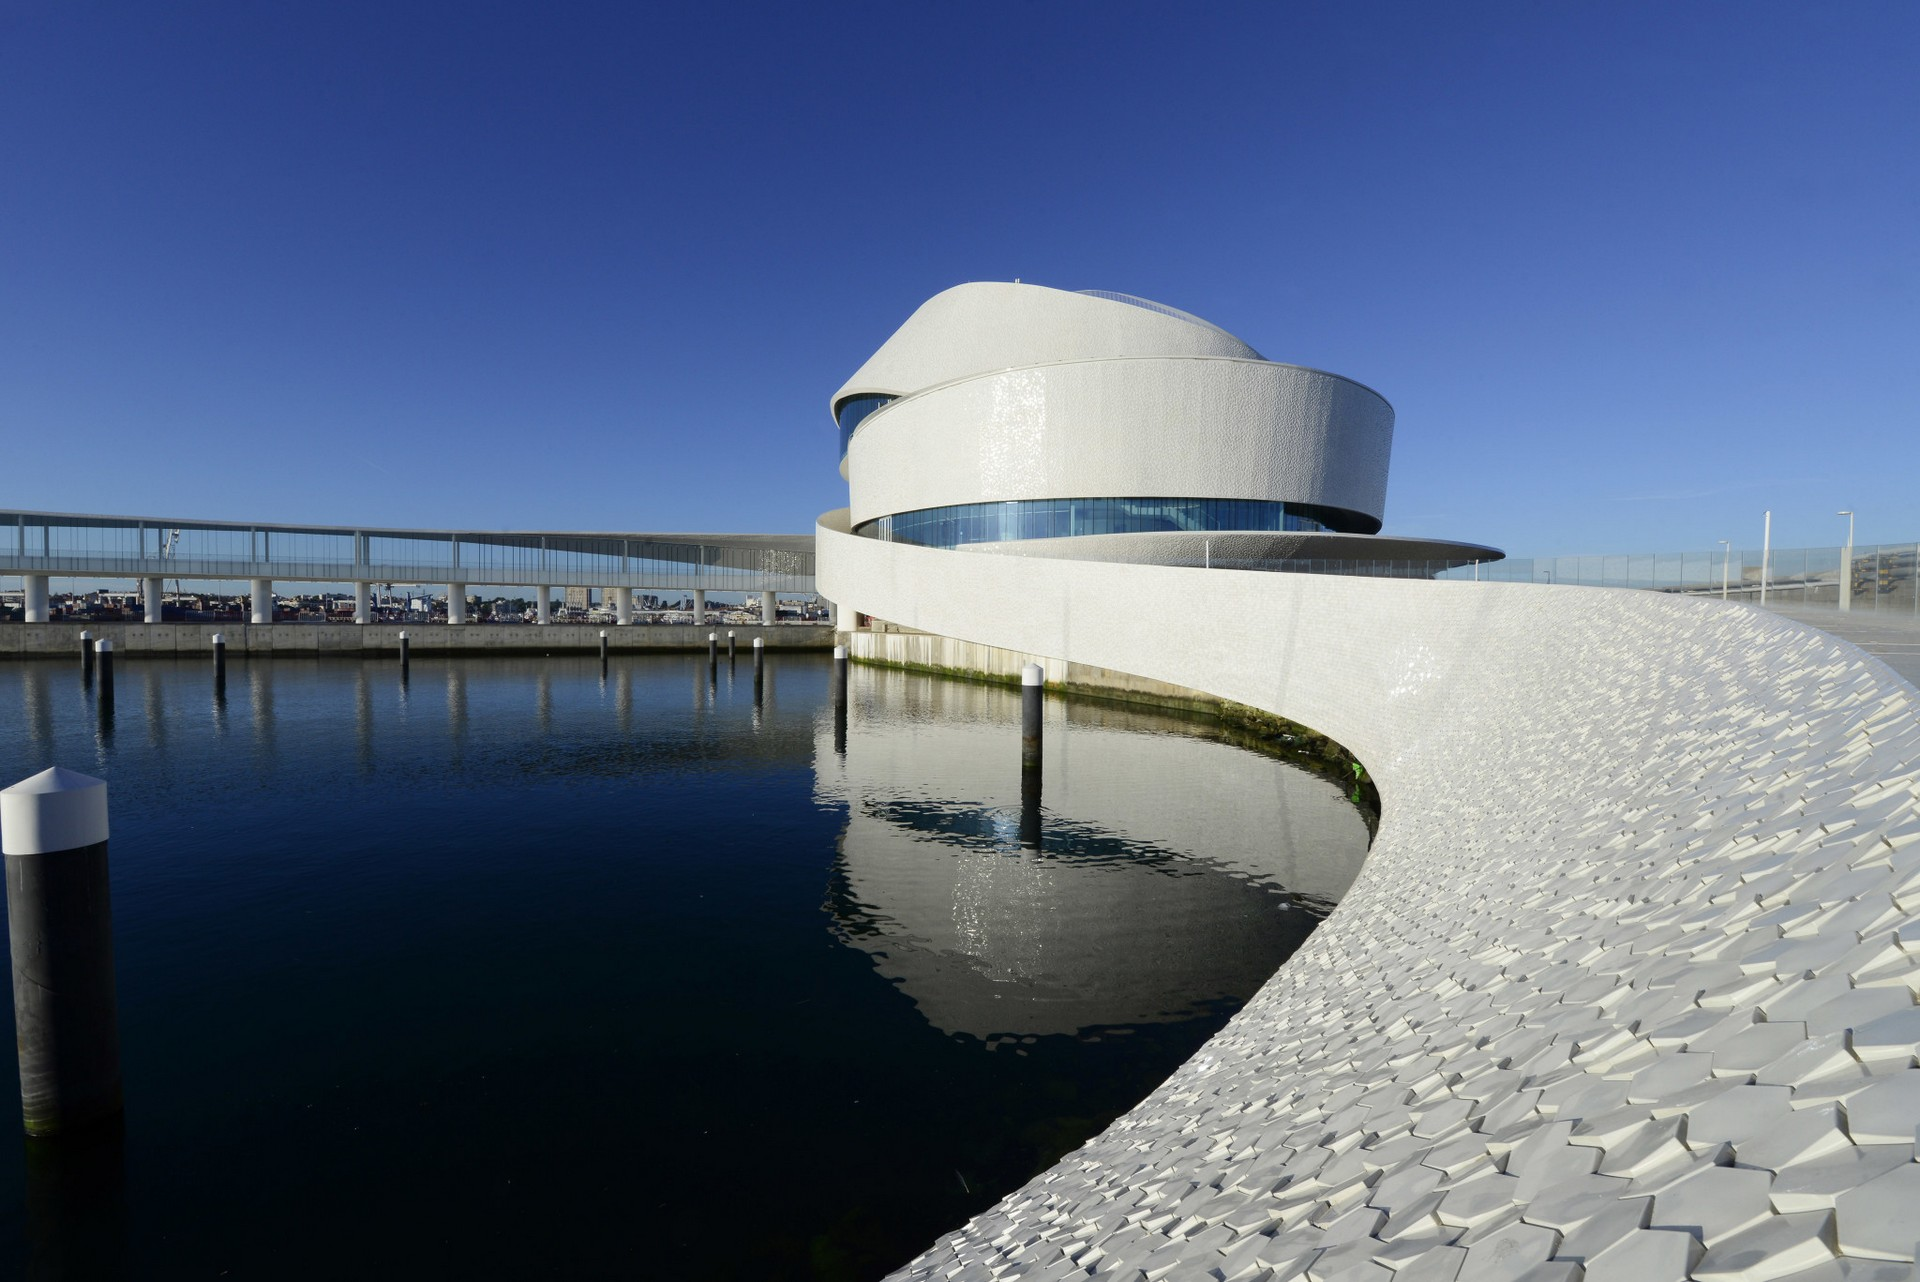 Best Architectural Design: Terminal de Cruzeiros do Porto de Leixões what to do in porto What to do in Porto: 48 hours in the Undefeated city Best Architectural Design 2